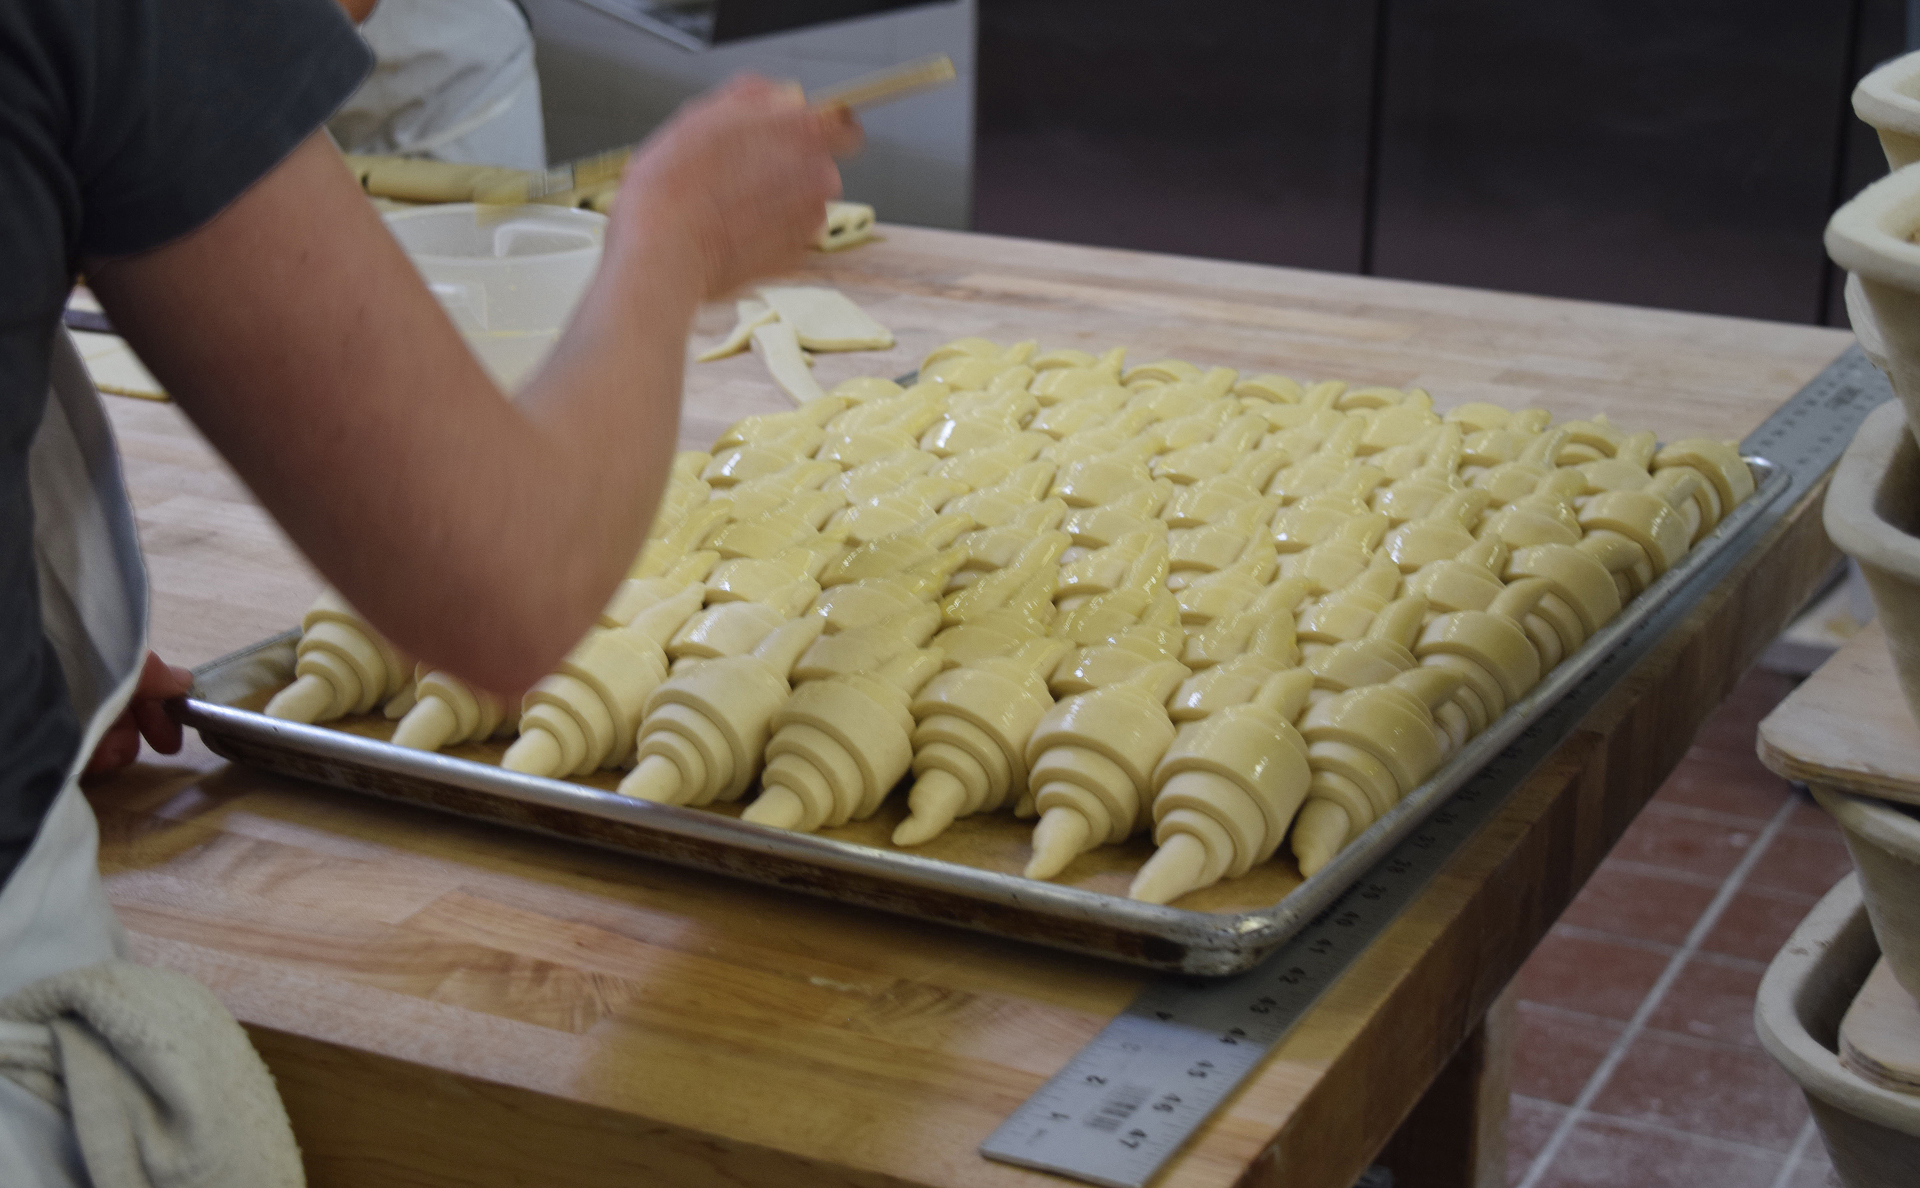 Picture-perfect croissants are buttered before baking. About 70% of bakery revenues currently come from pastries.